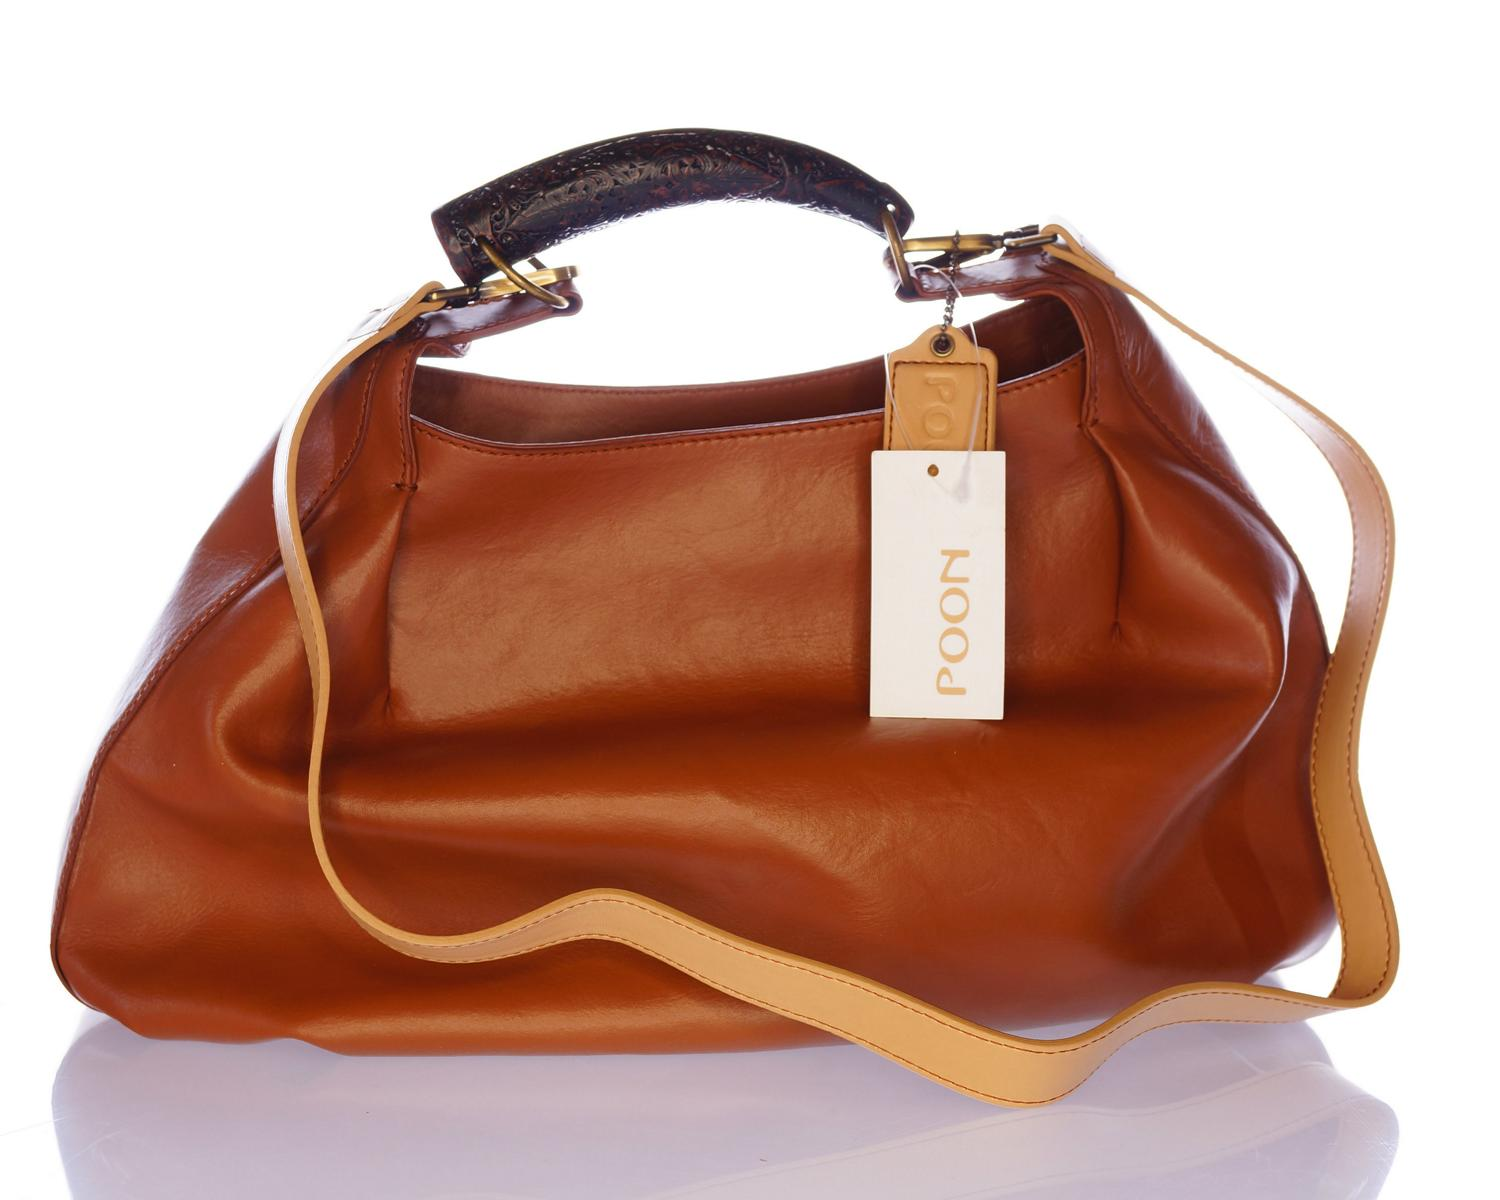 poon switzerland hobo bag tasche cognac braun leder eur gm3817 ebay. Black Bedroom Furniture Sets. Home Design Ideas